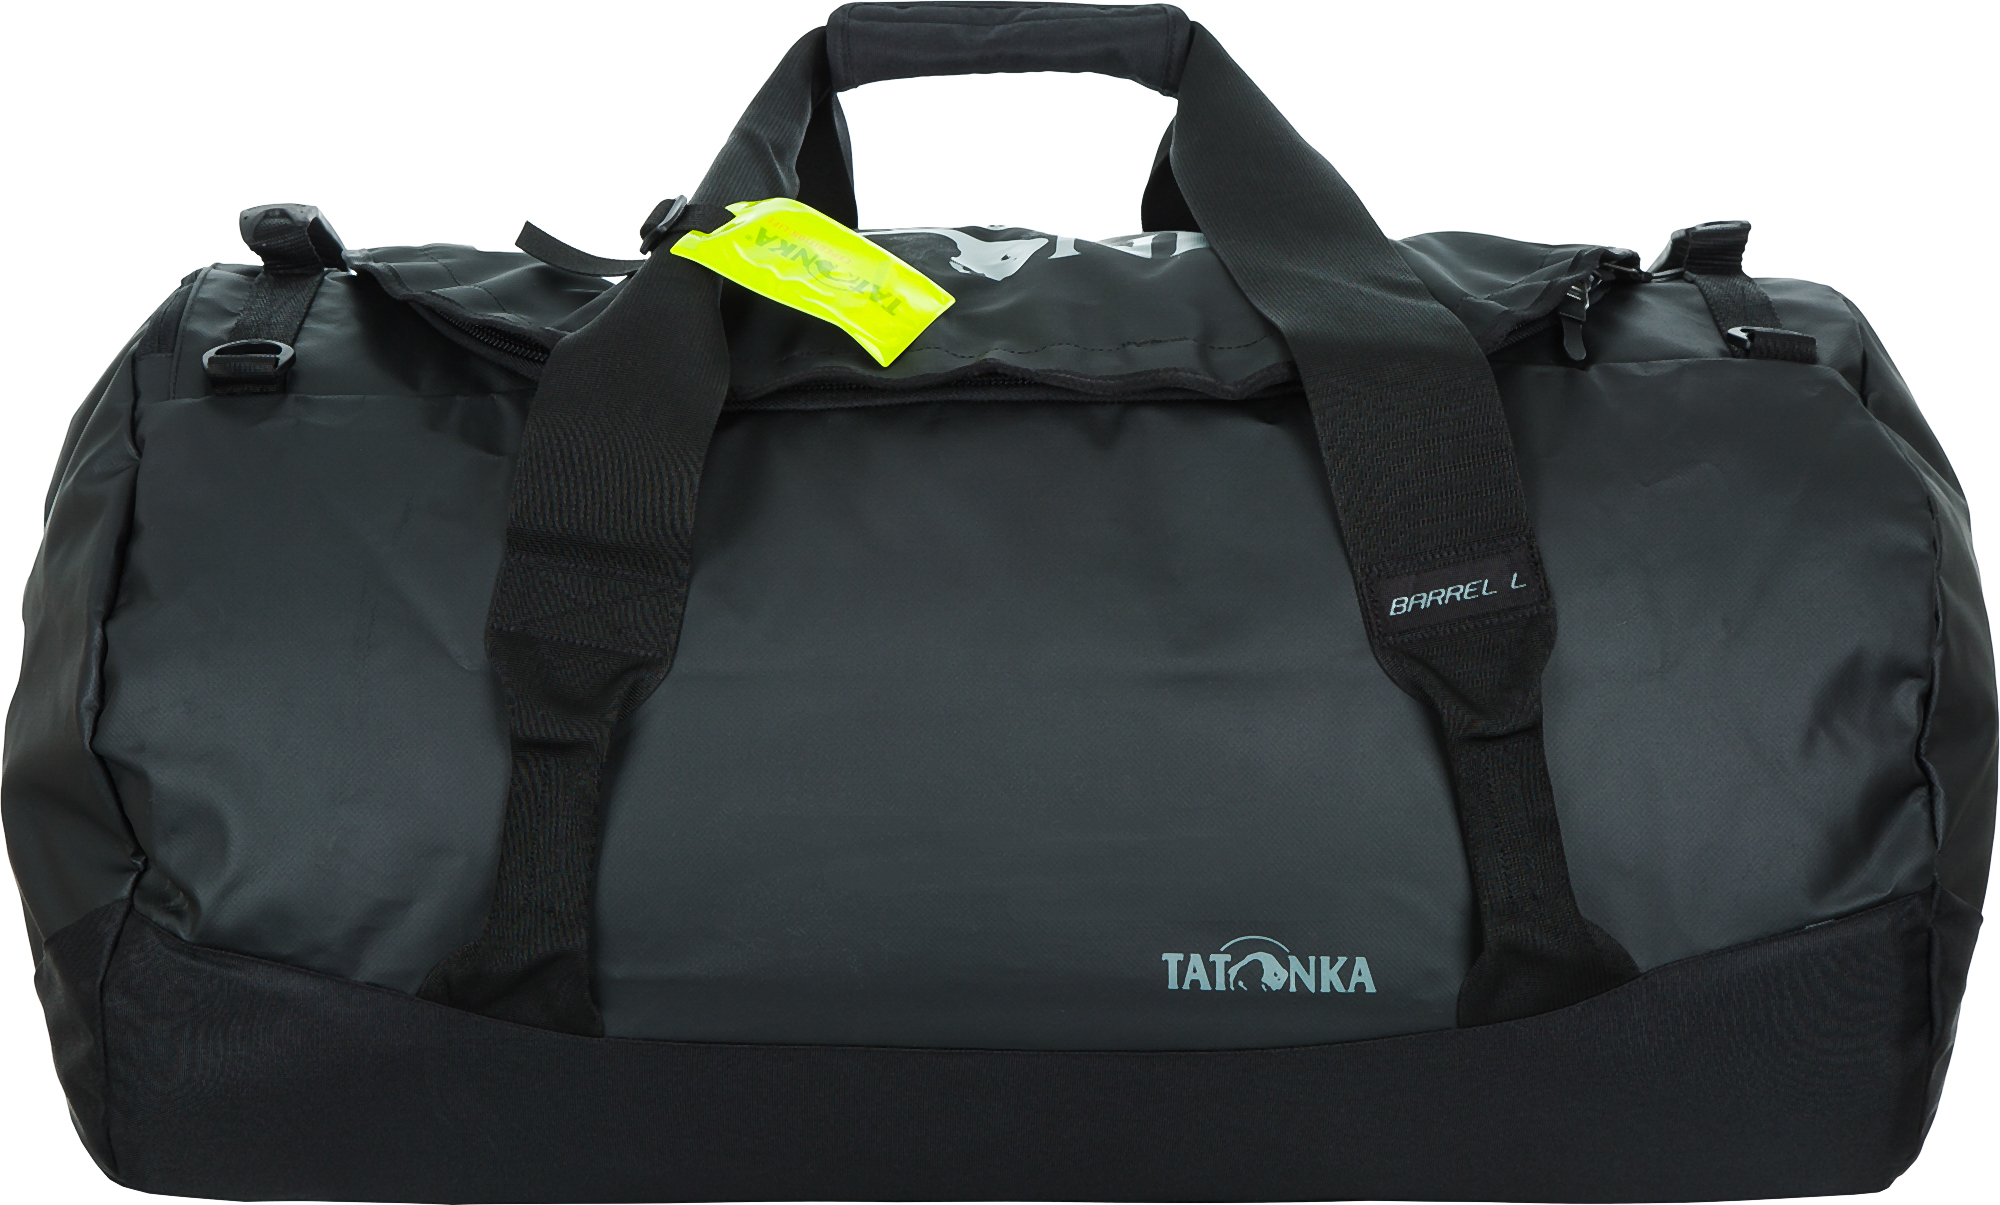 Tatonka Сумка BARREL XL 110 л